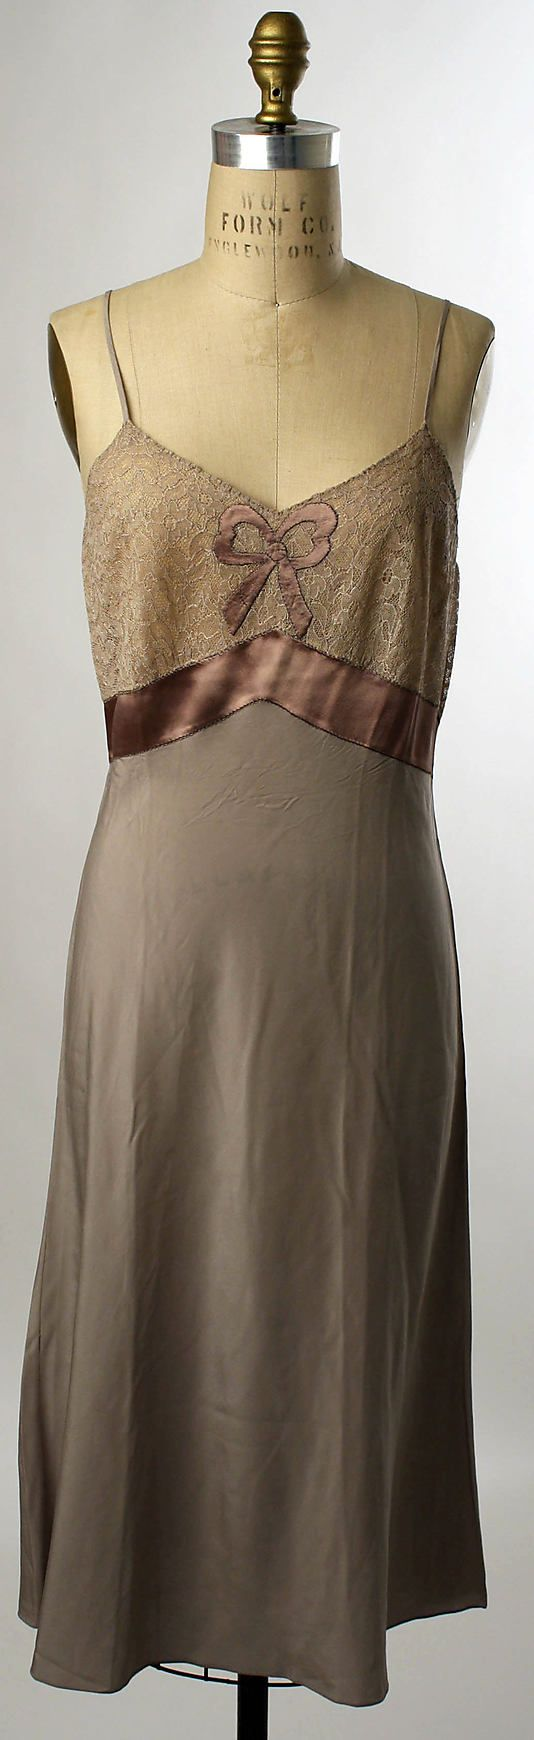 Slip  Date: 1930s Culture: French